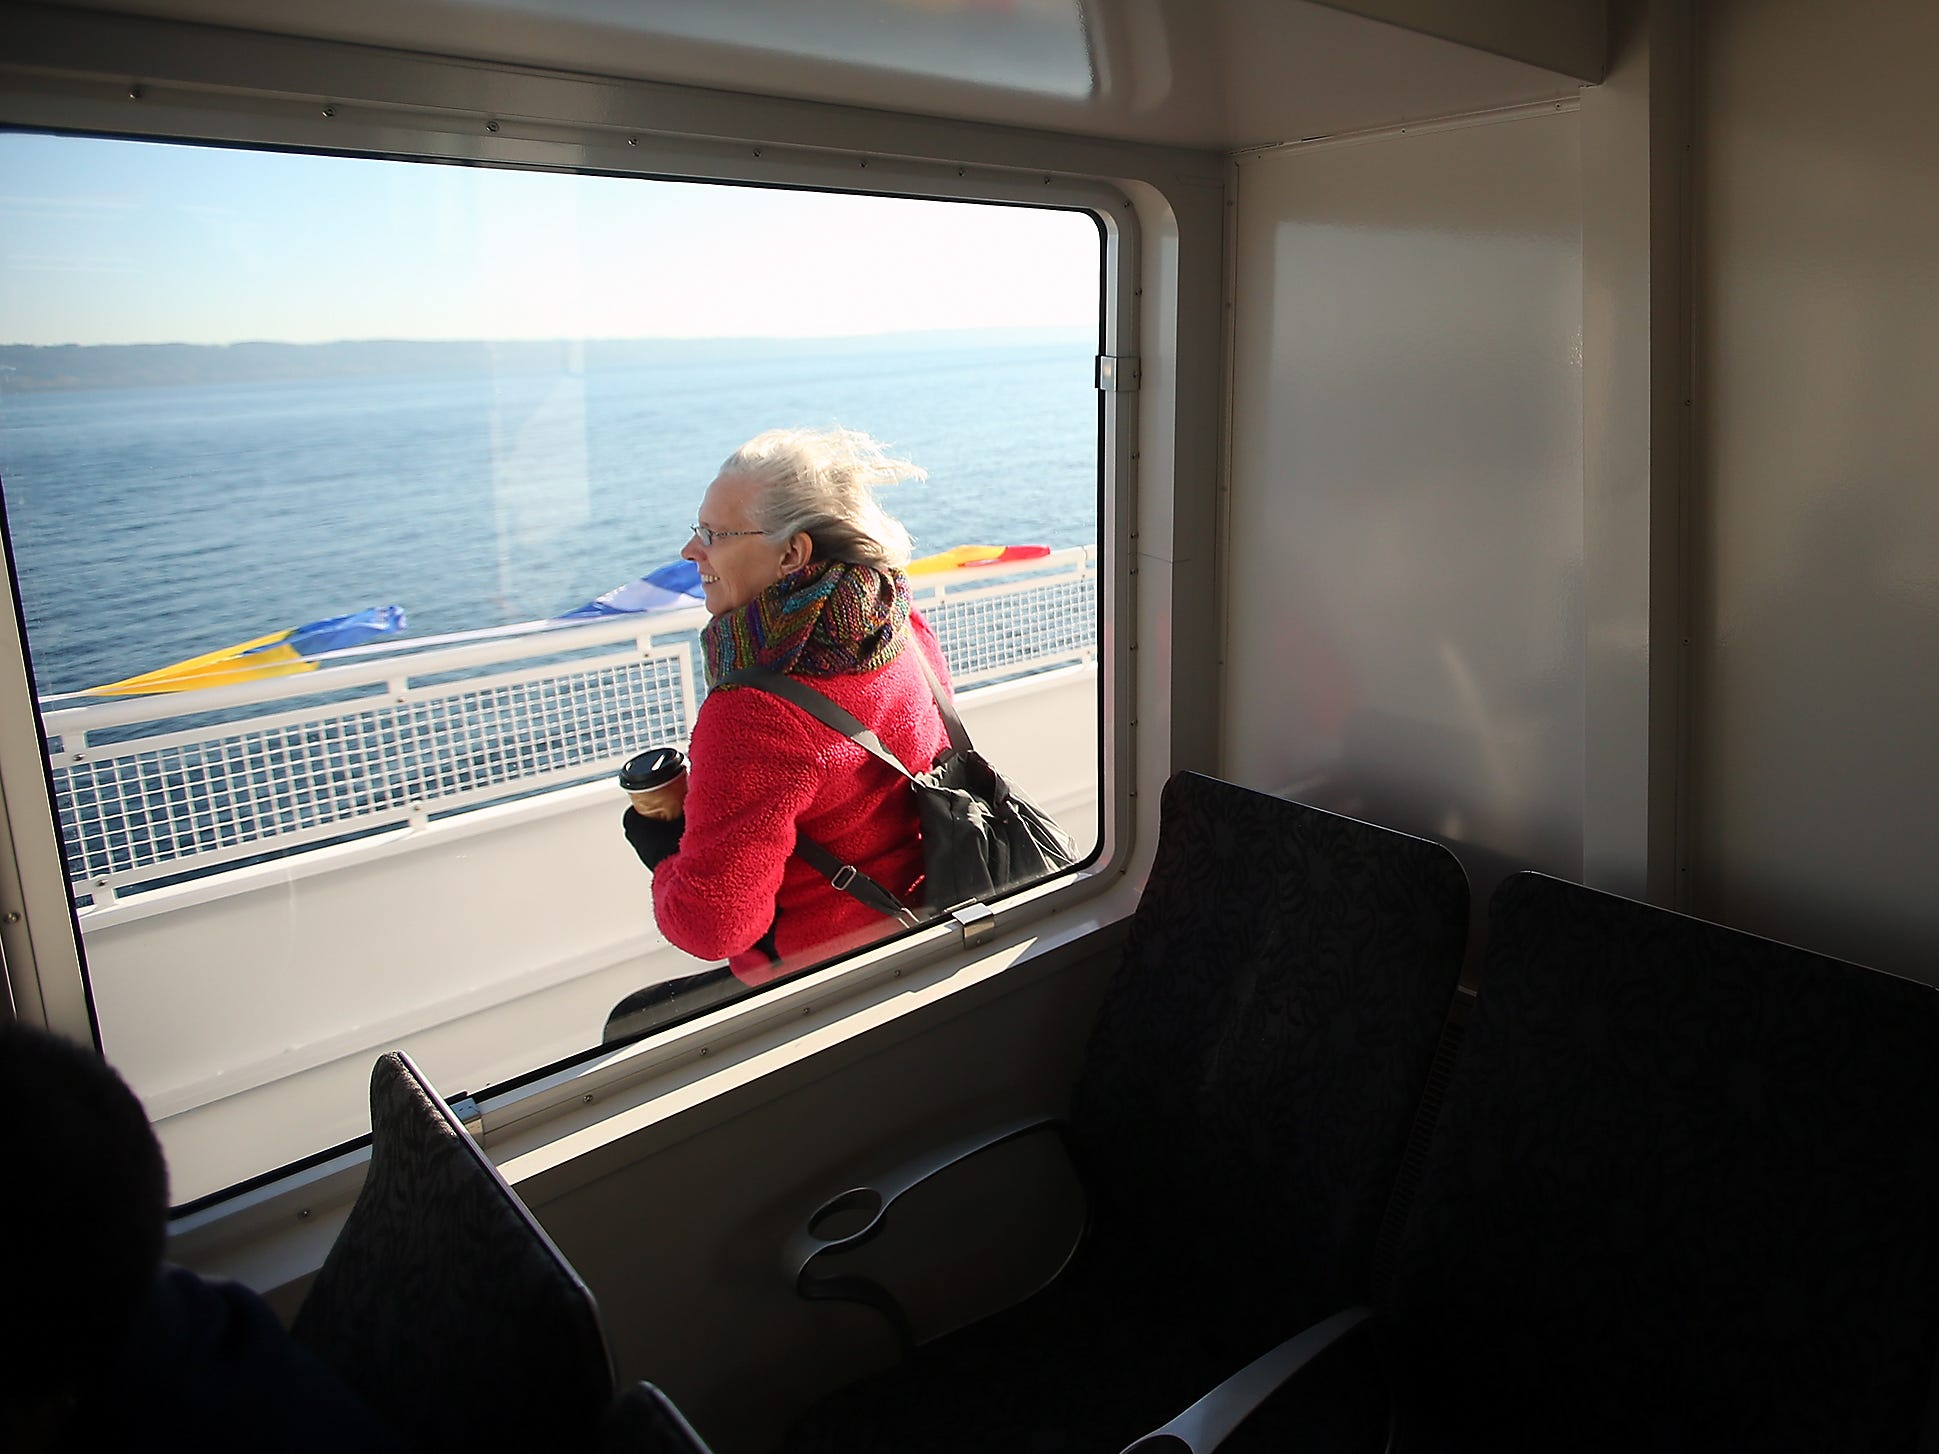 Maria Escobar, of Port Ludow, is framed by the cabin window as she braves the wind and the cold to sit outside during the grand opening ride of the M/V Finest on Monday, November 19, 2018.